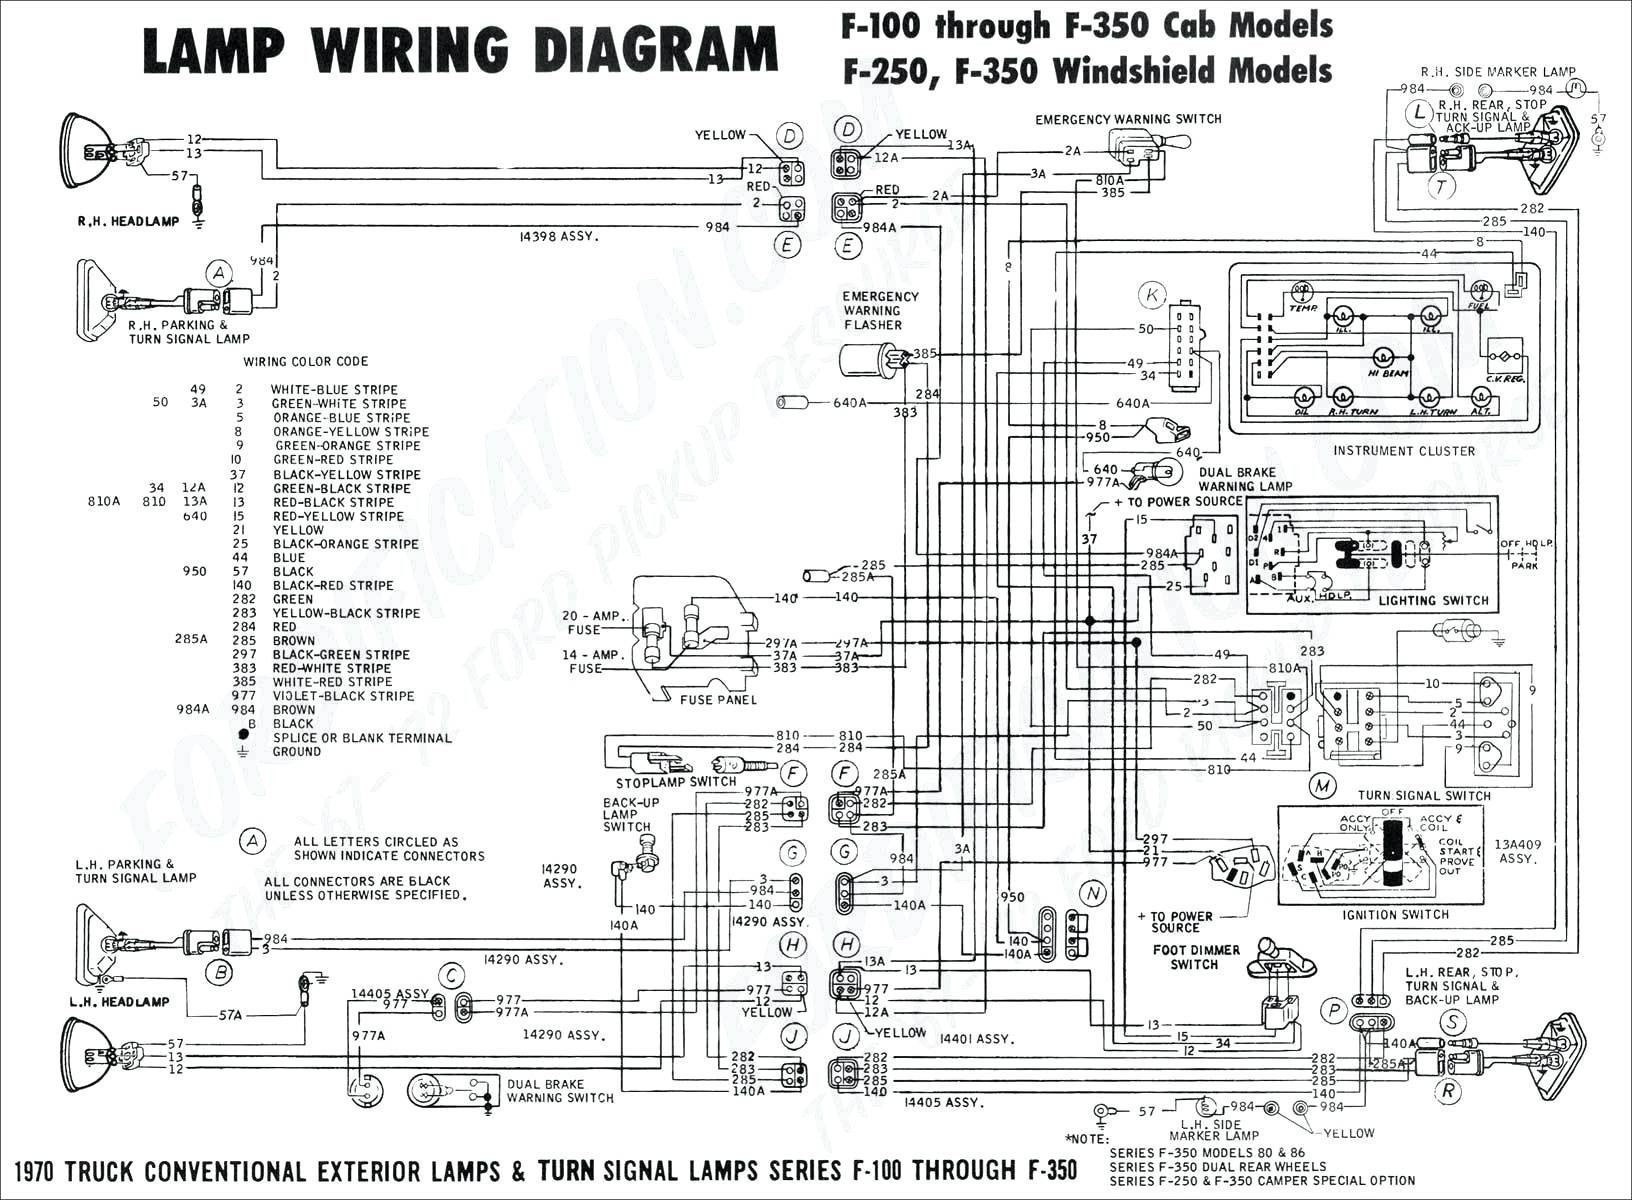 1999 F250 Battery Diagram Schematic Diagrams 1999 Ford Truck Wiring Diagram  Wiring Diagram F350 1999 Superduty